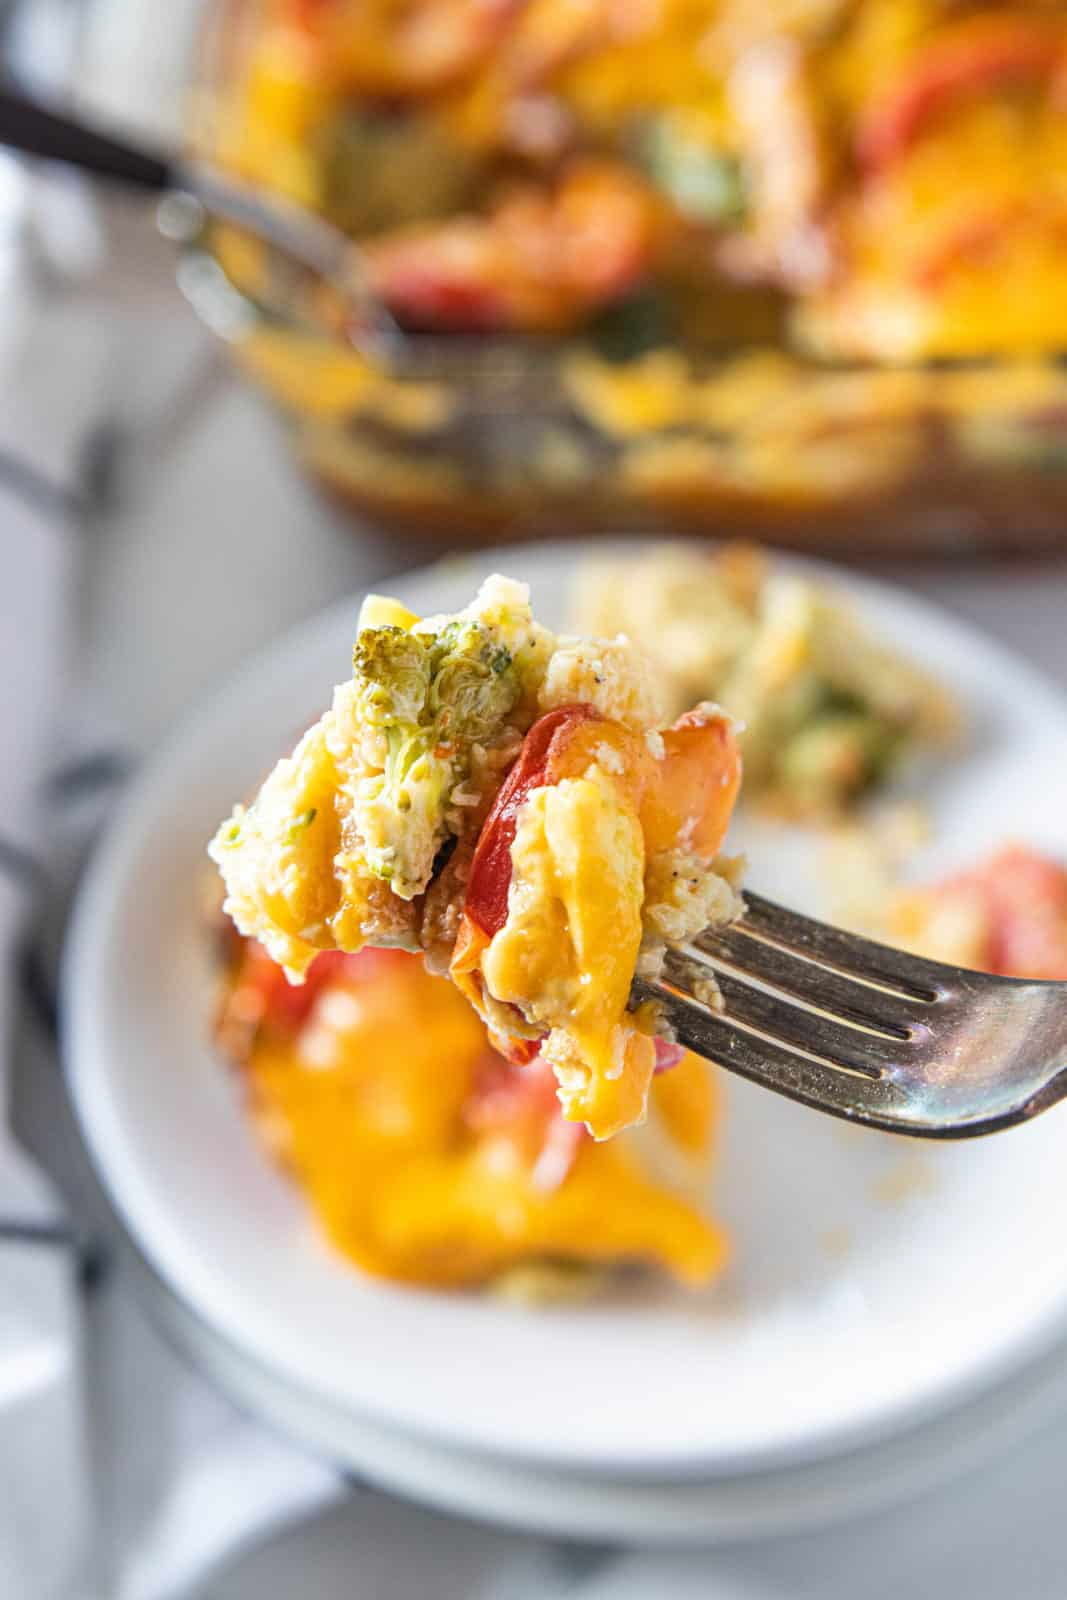 A fork being shown picking up a bite of vegetable strata from a plate.